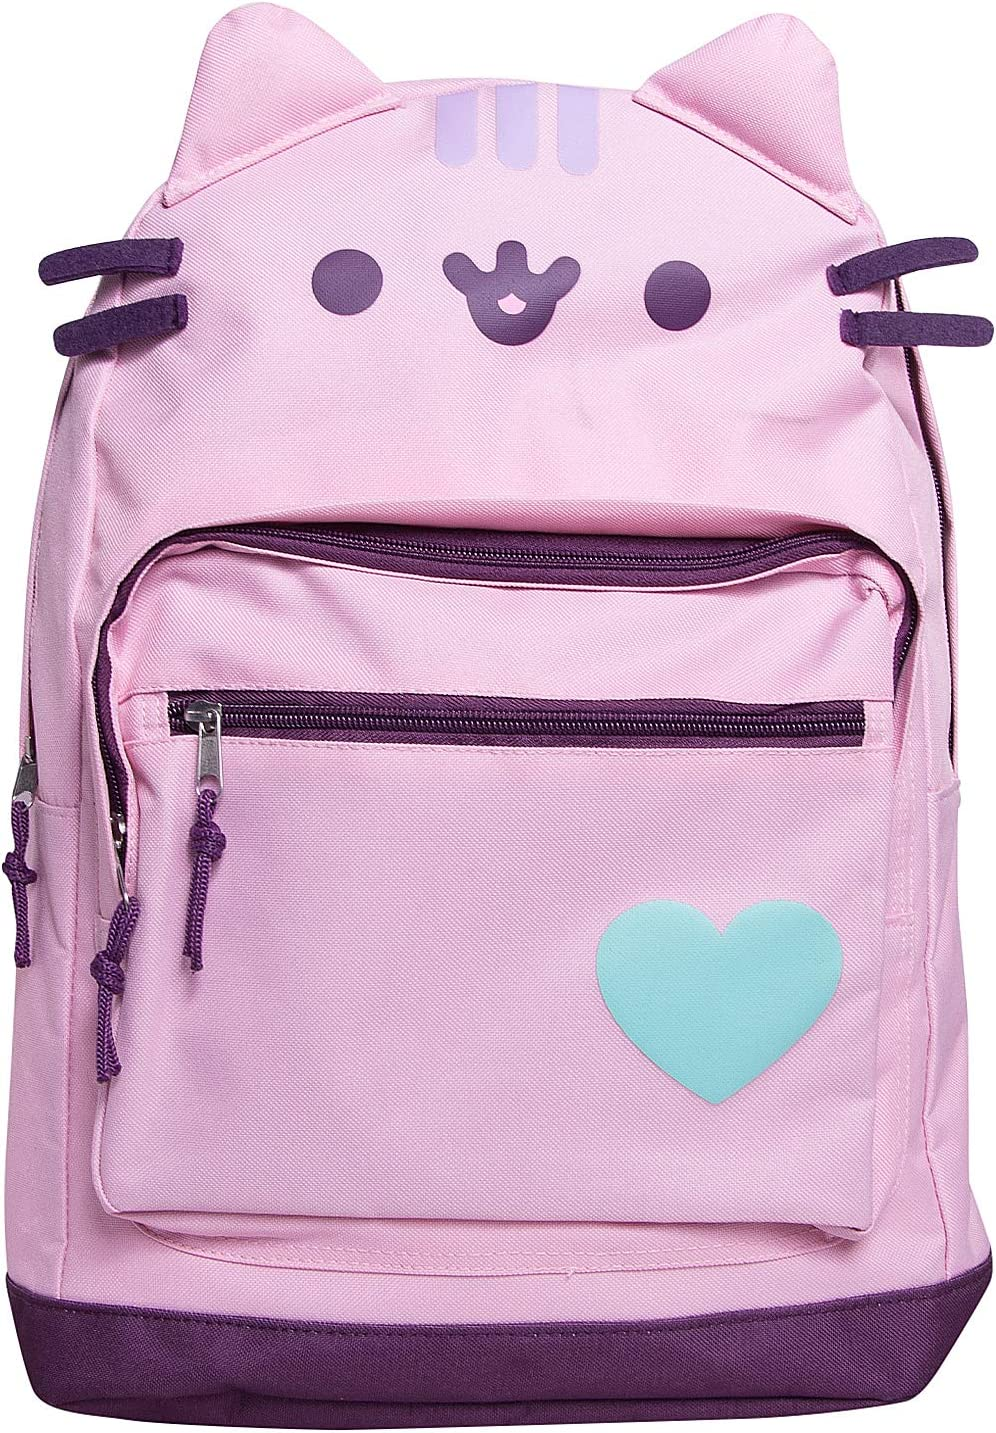 Pusheen The Cat Backpack Standard Size Backpack for Girls Everyday Use- Pink